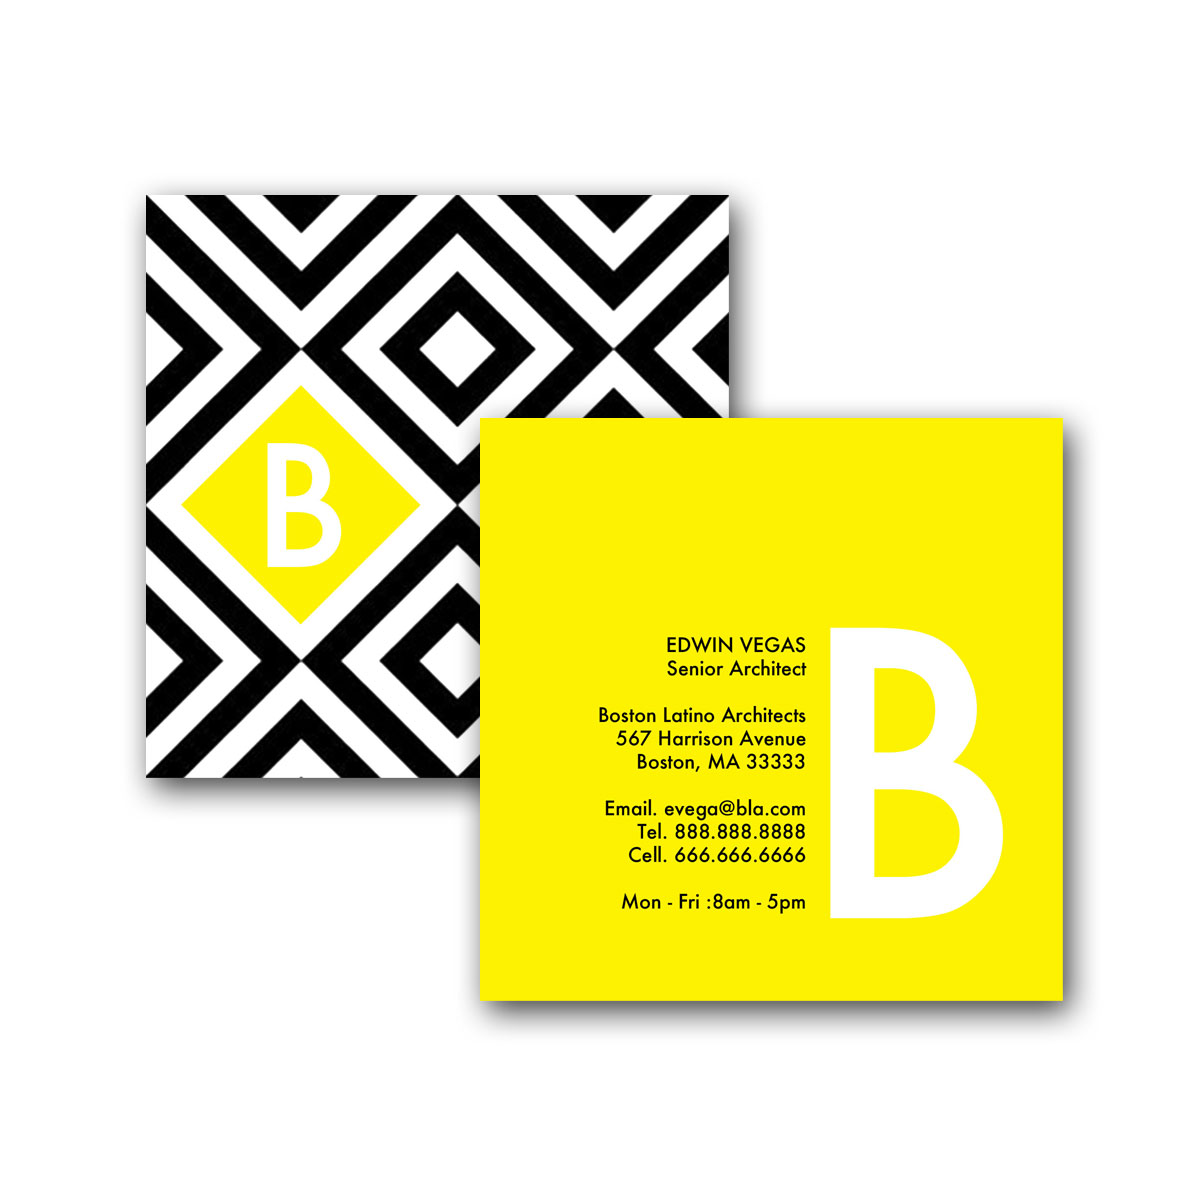 Squares in a square square business card creative solutions studio home business cards square business card designs squares in a square square business card colourmoves